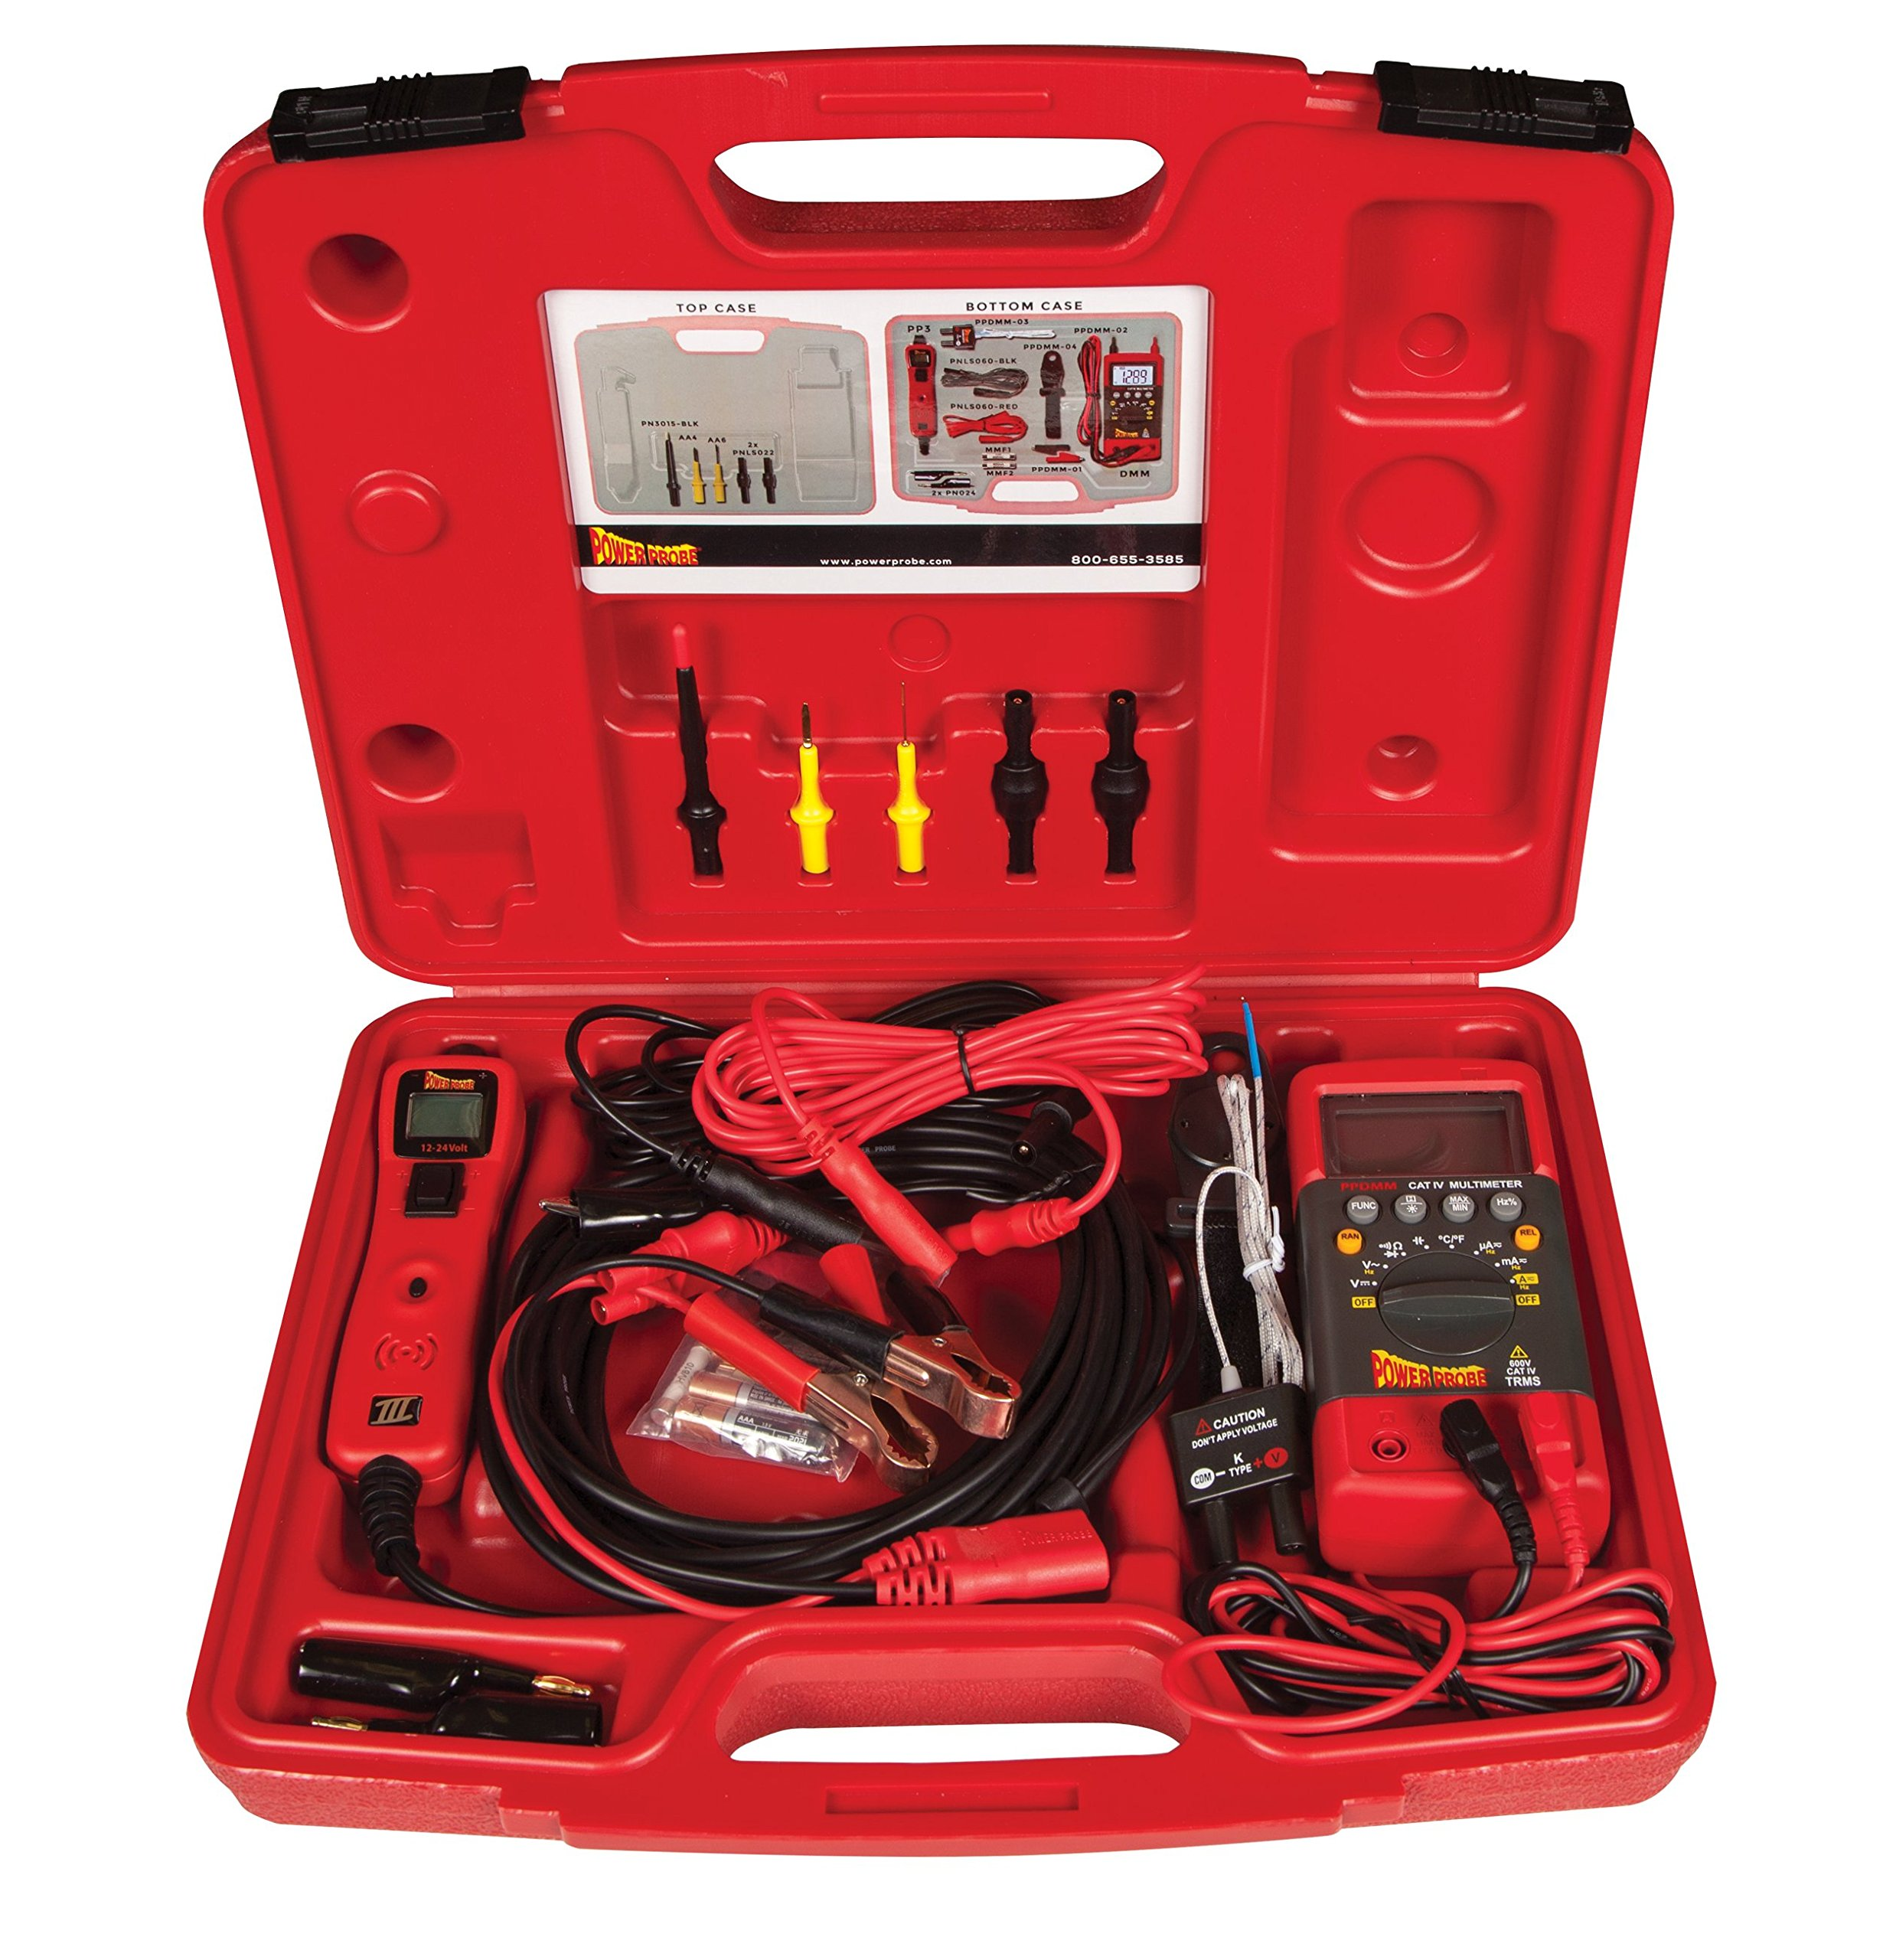 POWER PROBE Professional Electrical Test Kit - Red (PPROKIT01) Includes Power Probe III with PPDMM and Accessories [Car Automotive Diagnostic Test Tool Power Up Electrical Components Digital Volt Meter Circuit Tester LCD Screen Flashlight Short Circuit Indicator Audible Tone Measures AC/DC Voltage